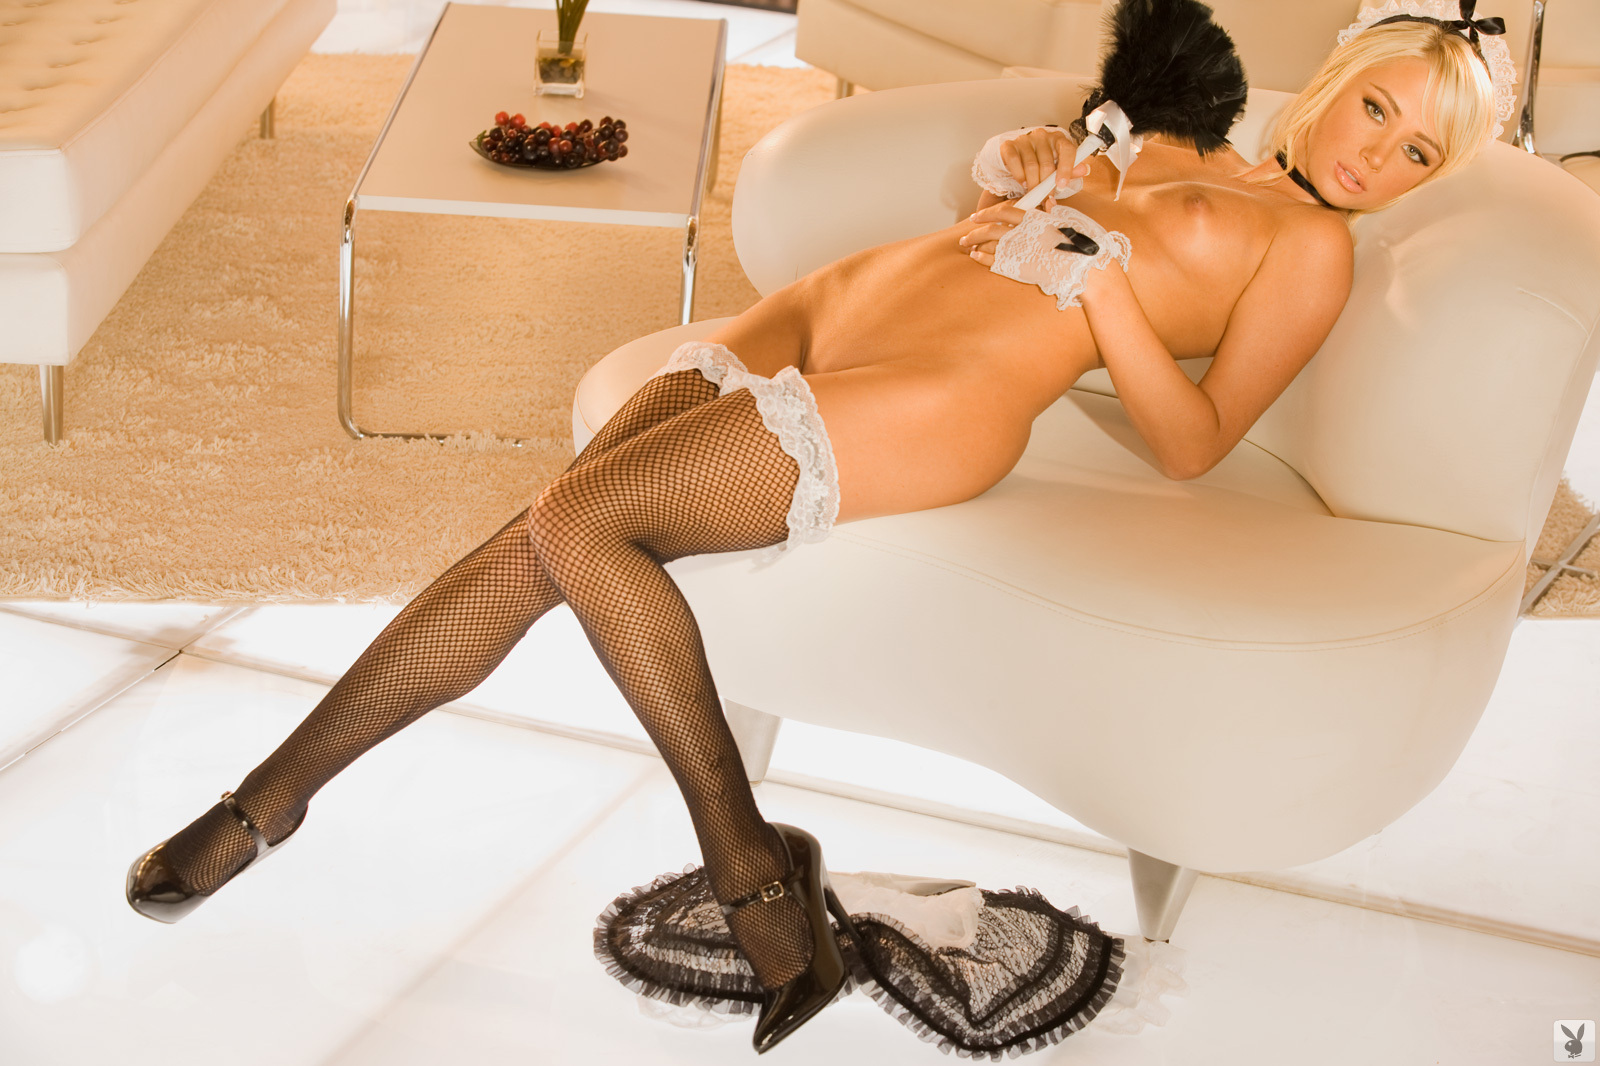 sexy-housemaid-naked-black-cock-pink-pussy